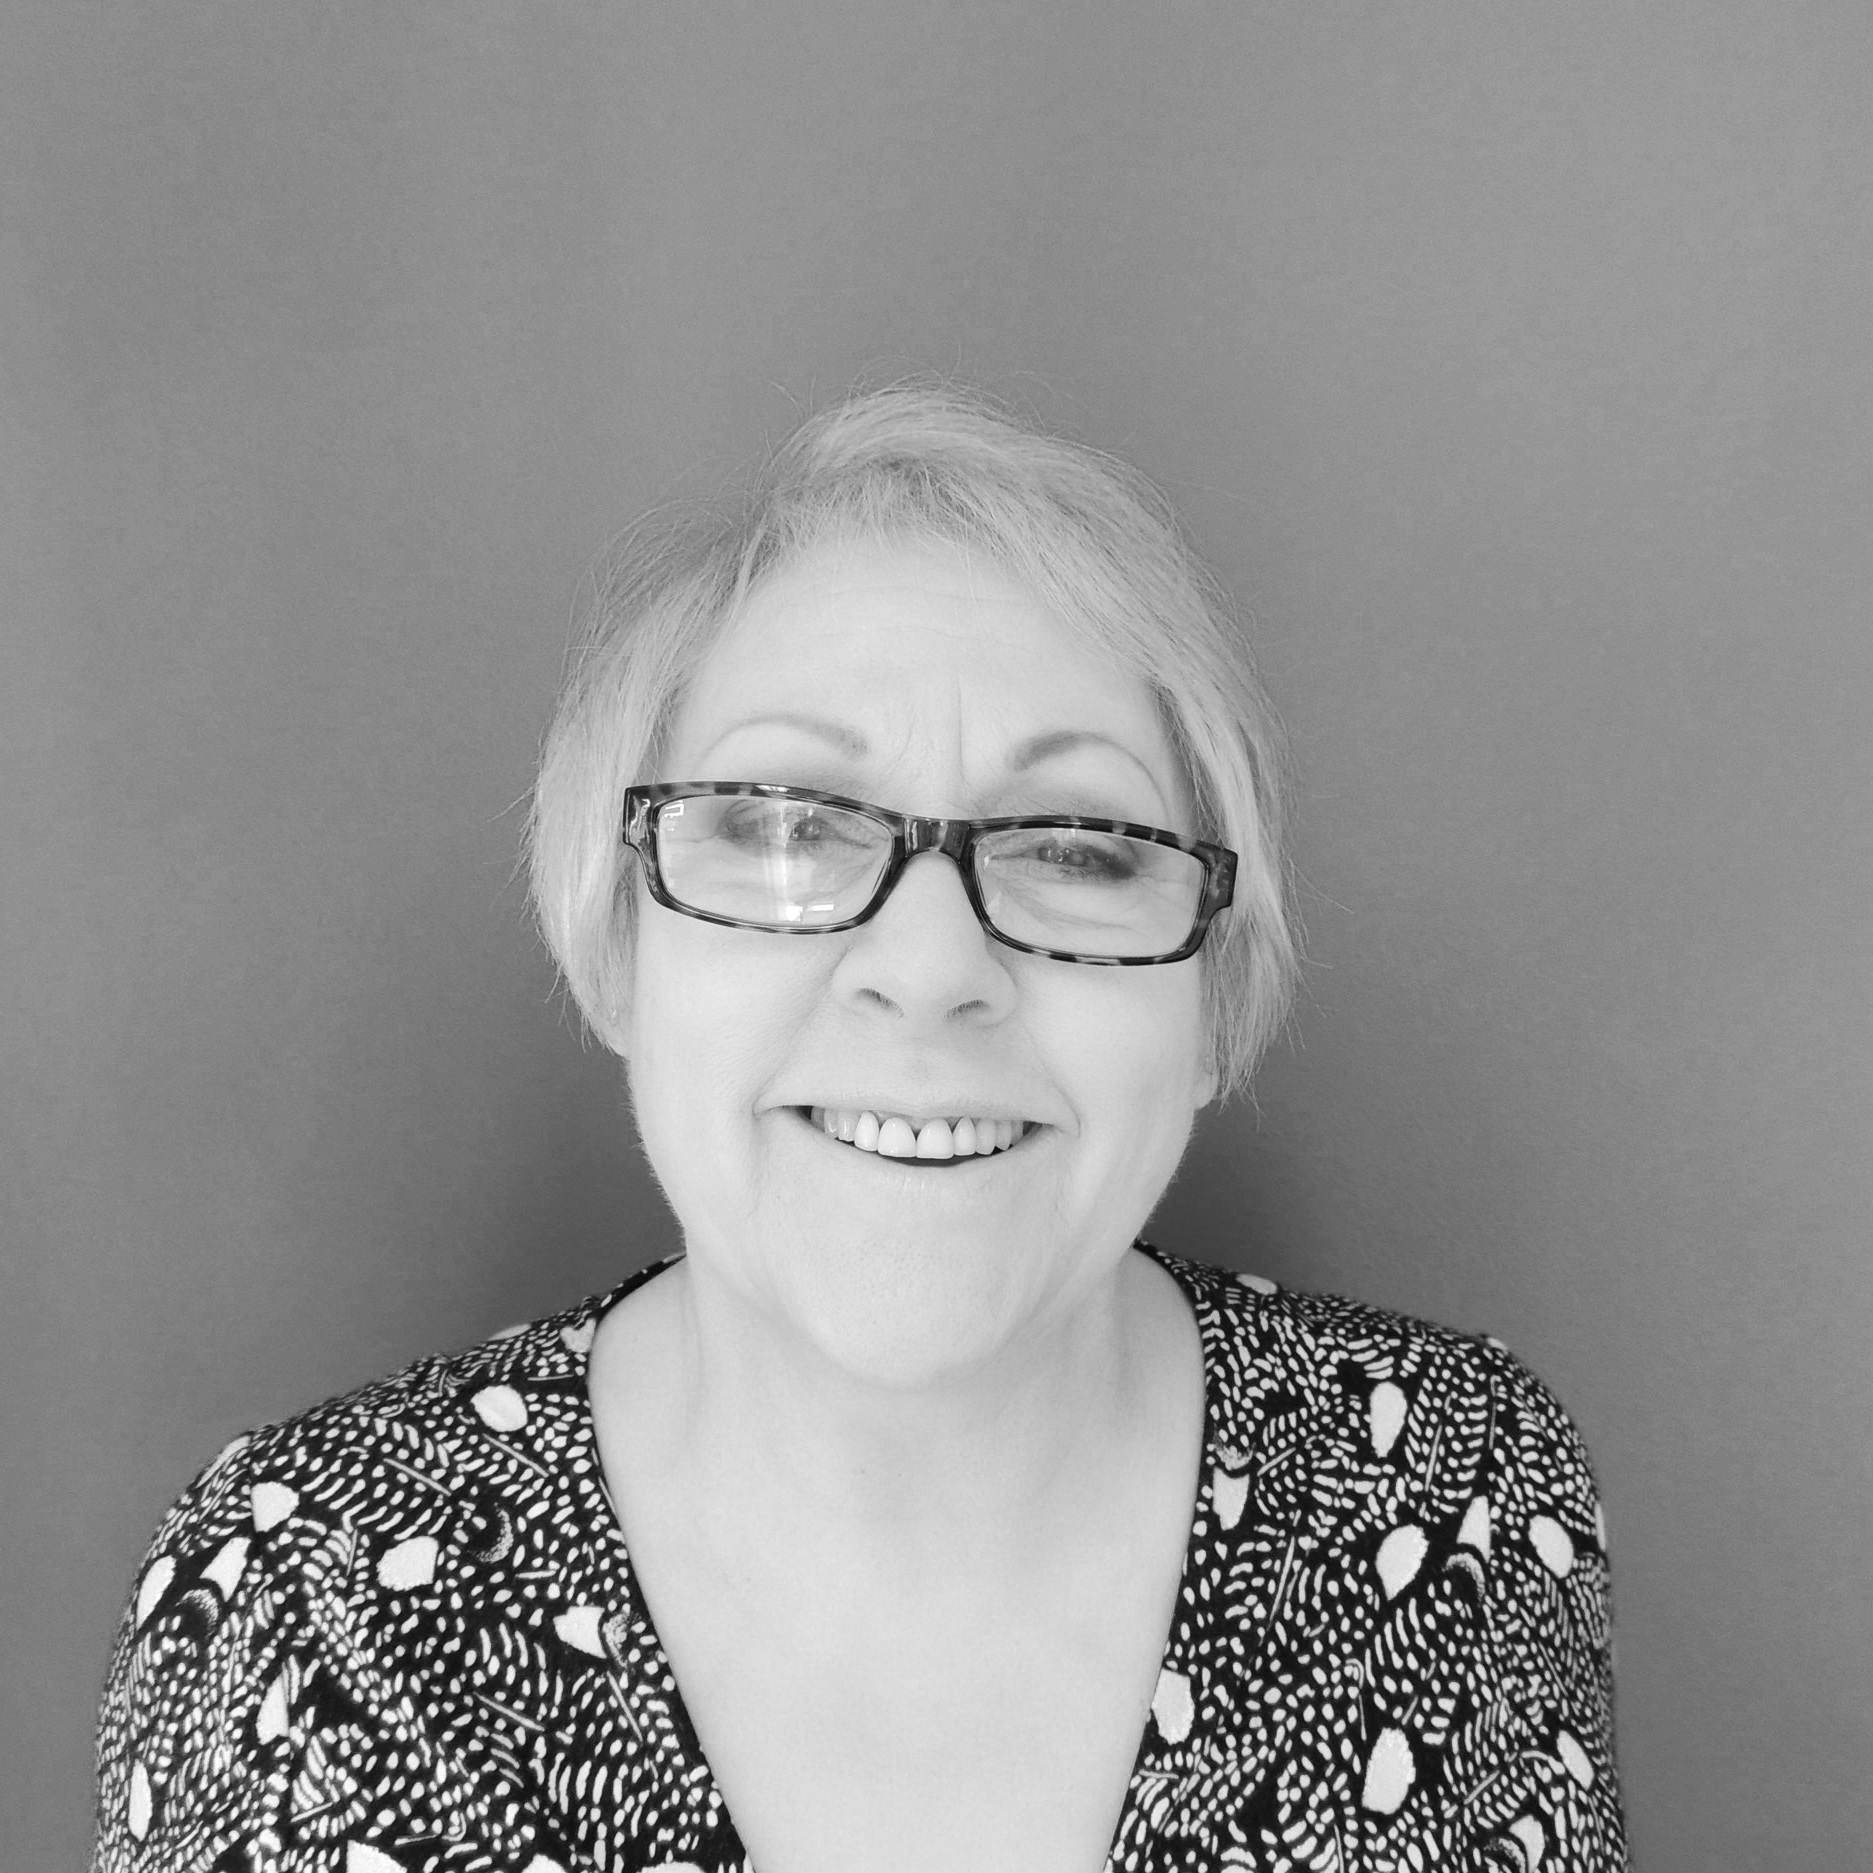 Karen Bickerton   Karen joined Coulby Conduct in 2018 with previous sale experience in Estate Agency. She is responsible for all sales progression and assisting the Branch Manager to run the office on a daily basis in our Winsford office.